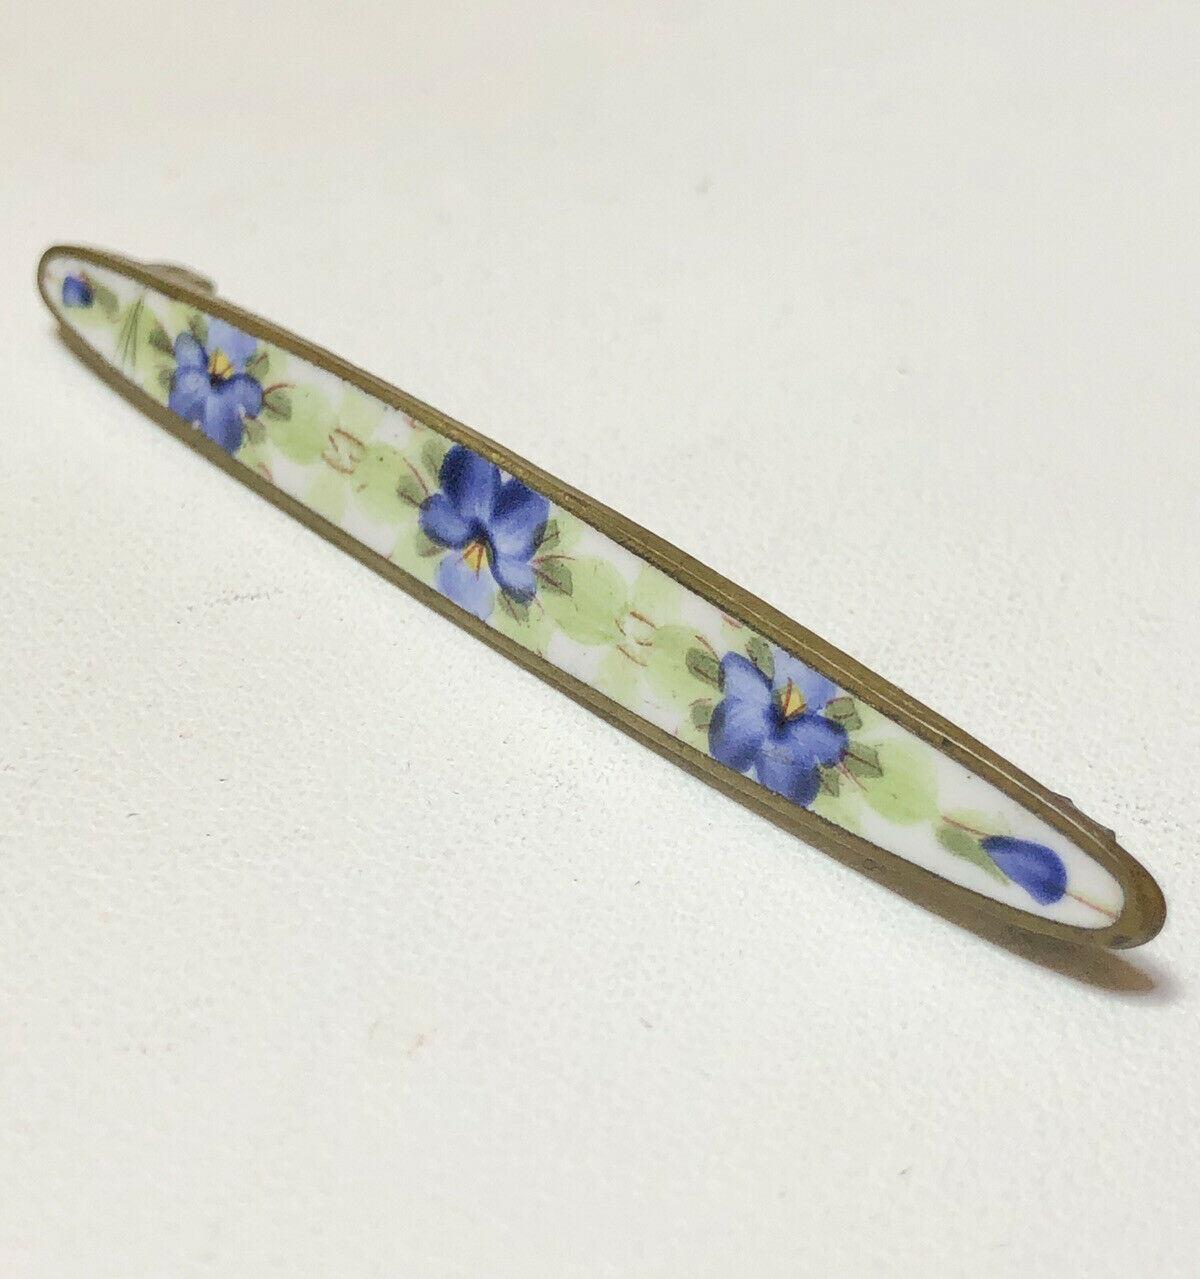 Antique Painted Enamel Pansy Flower Brooch Bar Pin - image 3